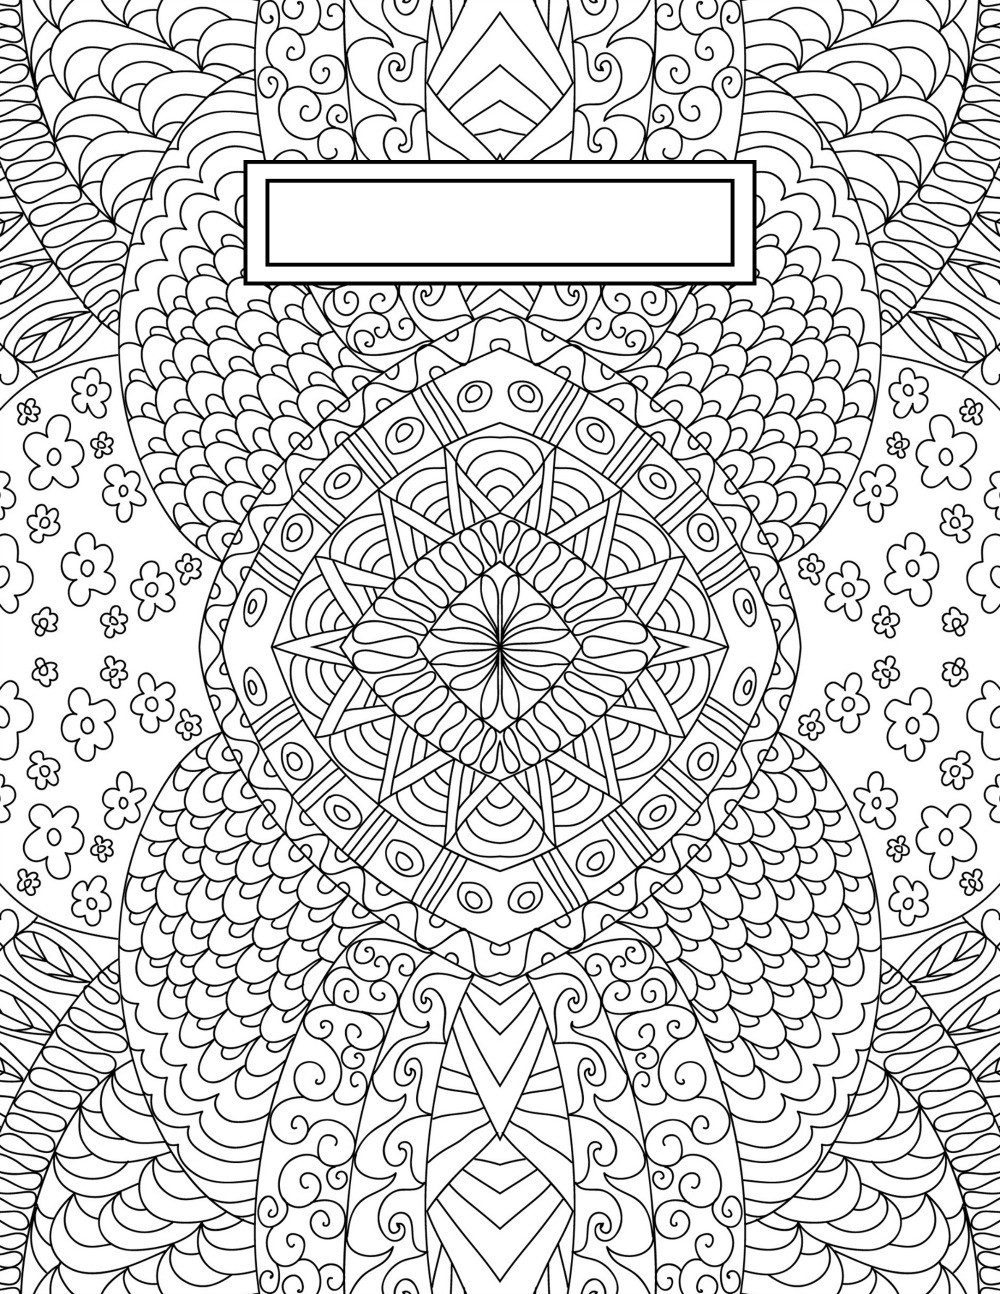 Coloring Sheets For Girls Binders  Back to School Binder Cover Adult Coloring Pages